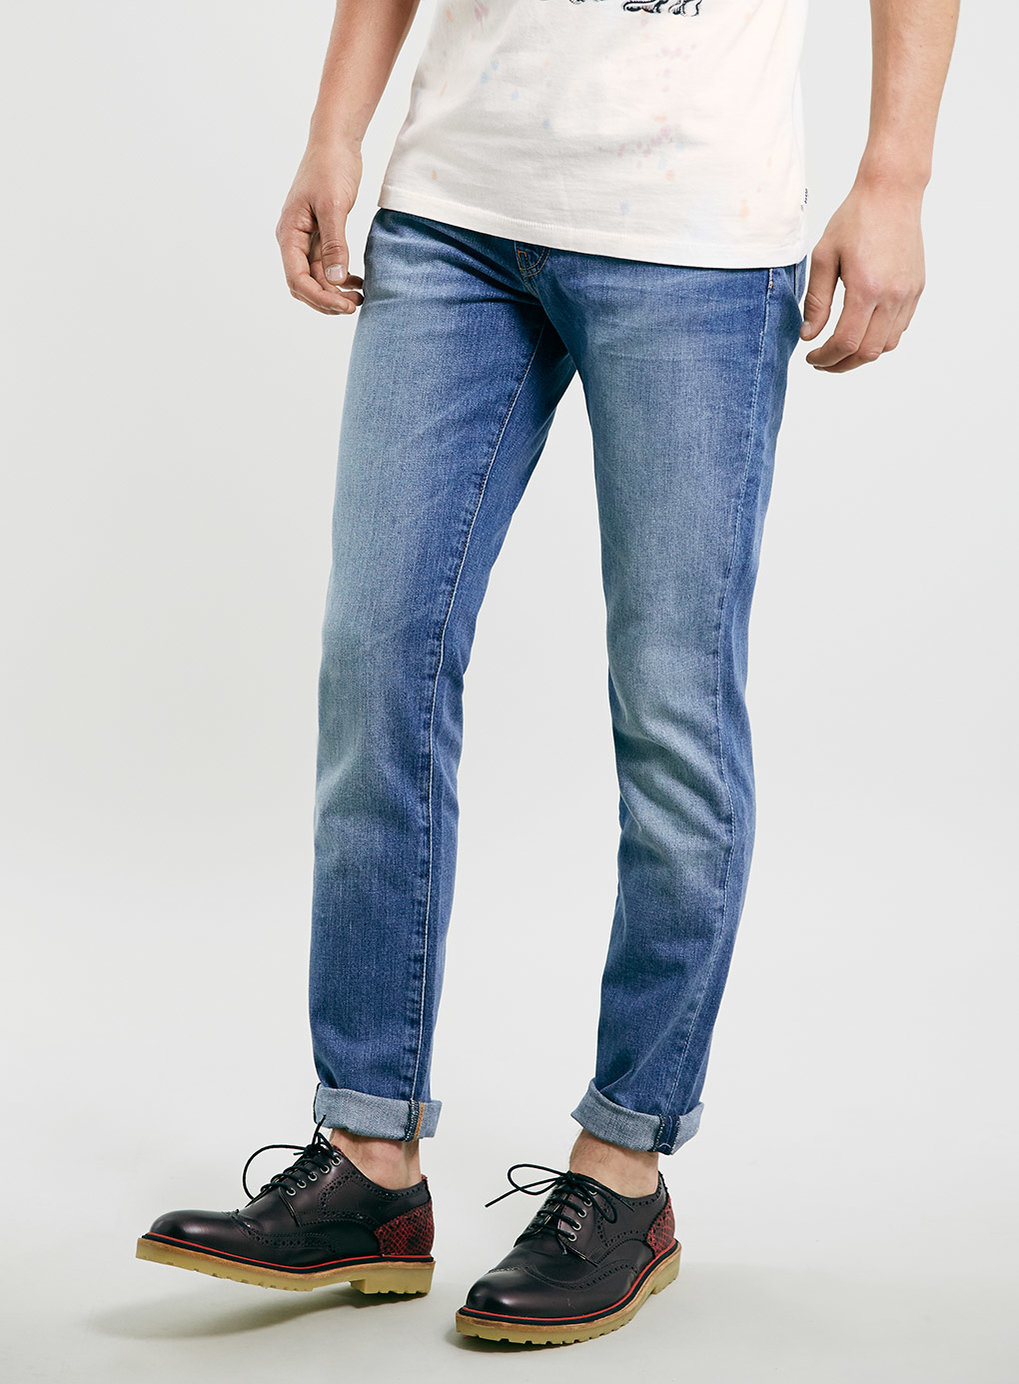 97f678862d8 blue 511 slim fit harbour jeans by Levi s — Thread